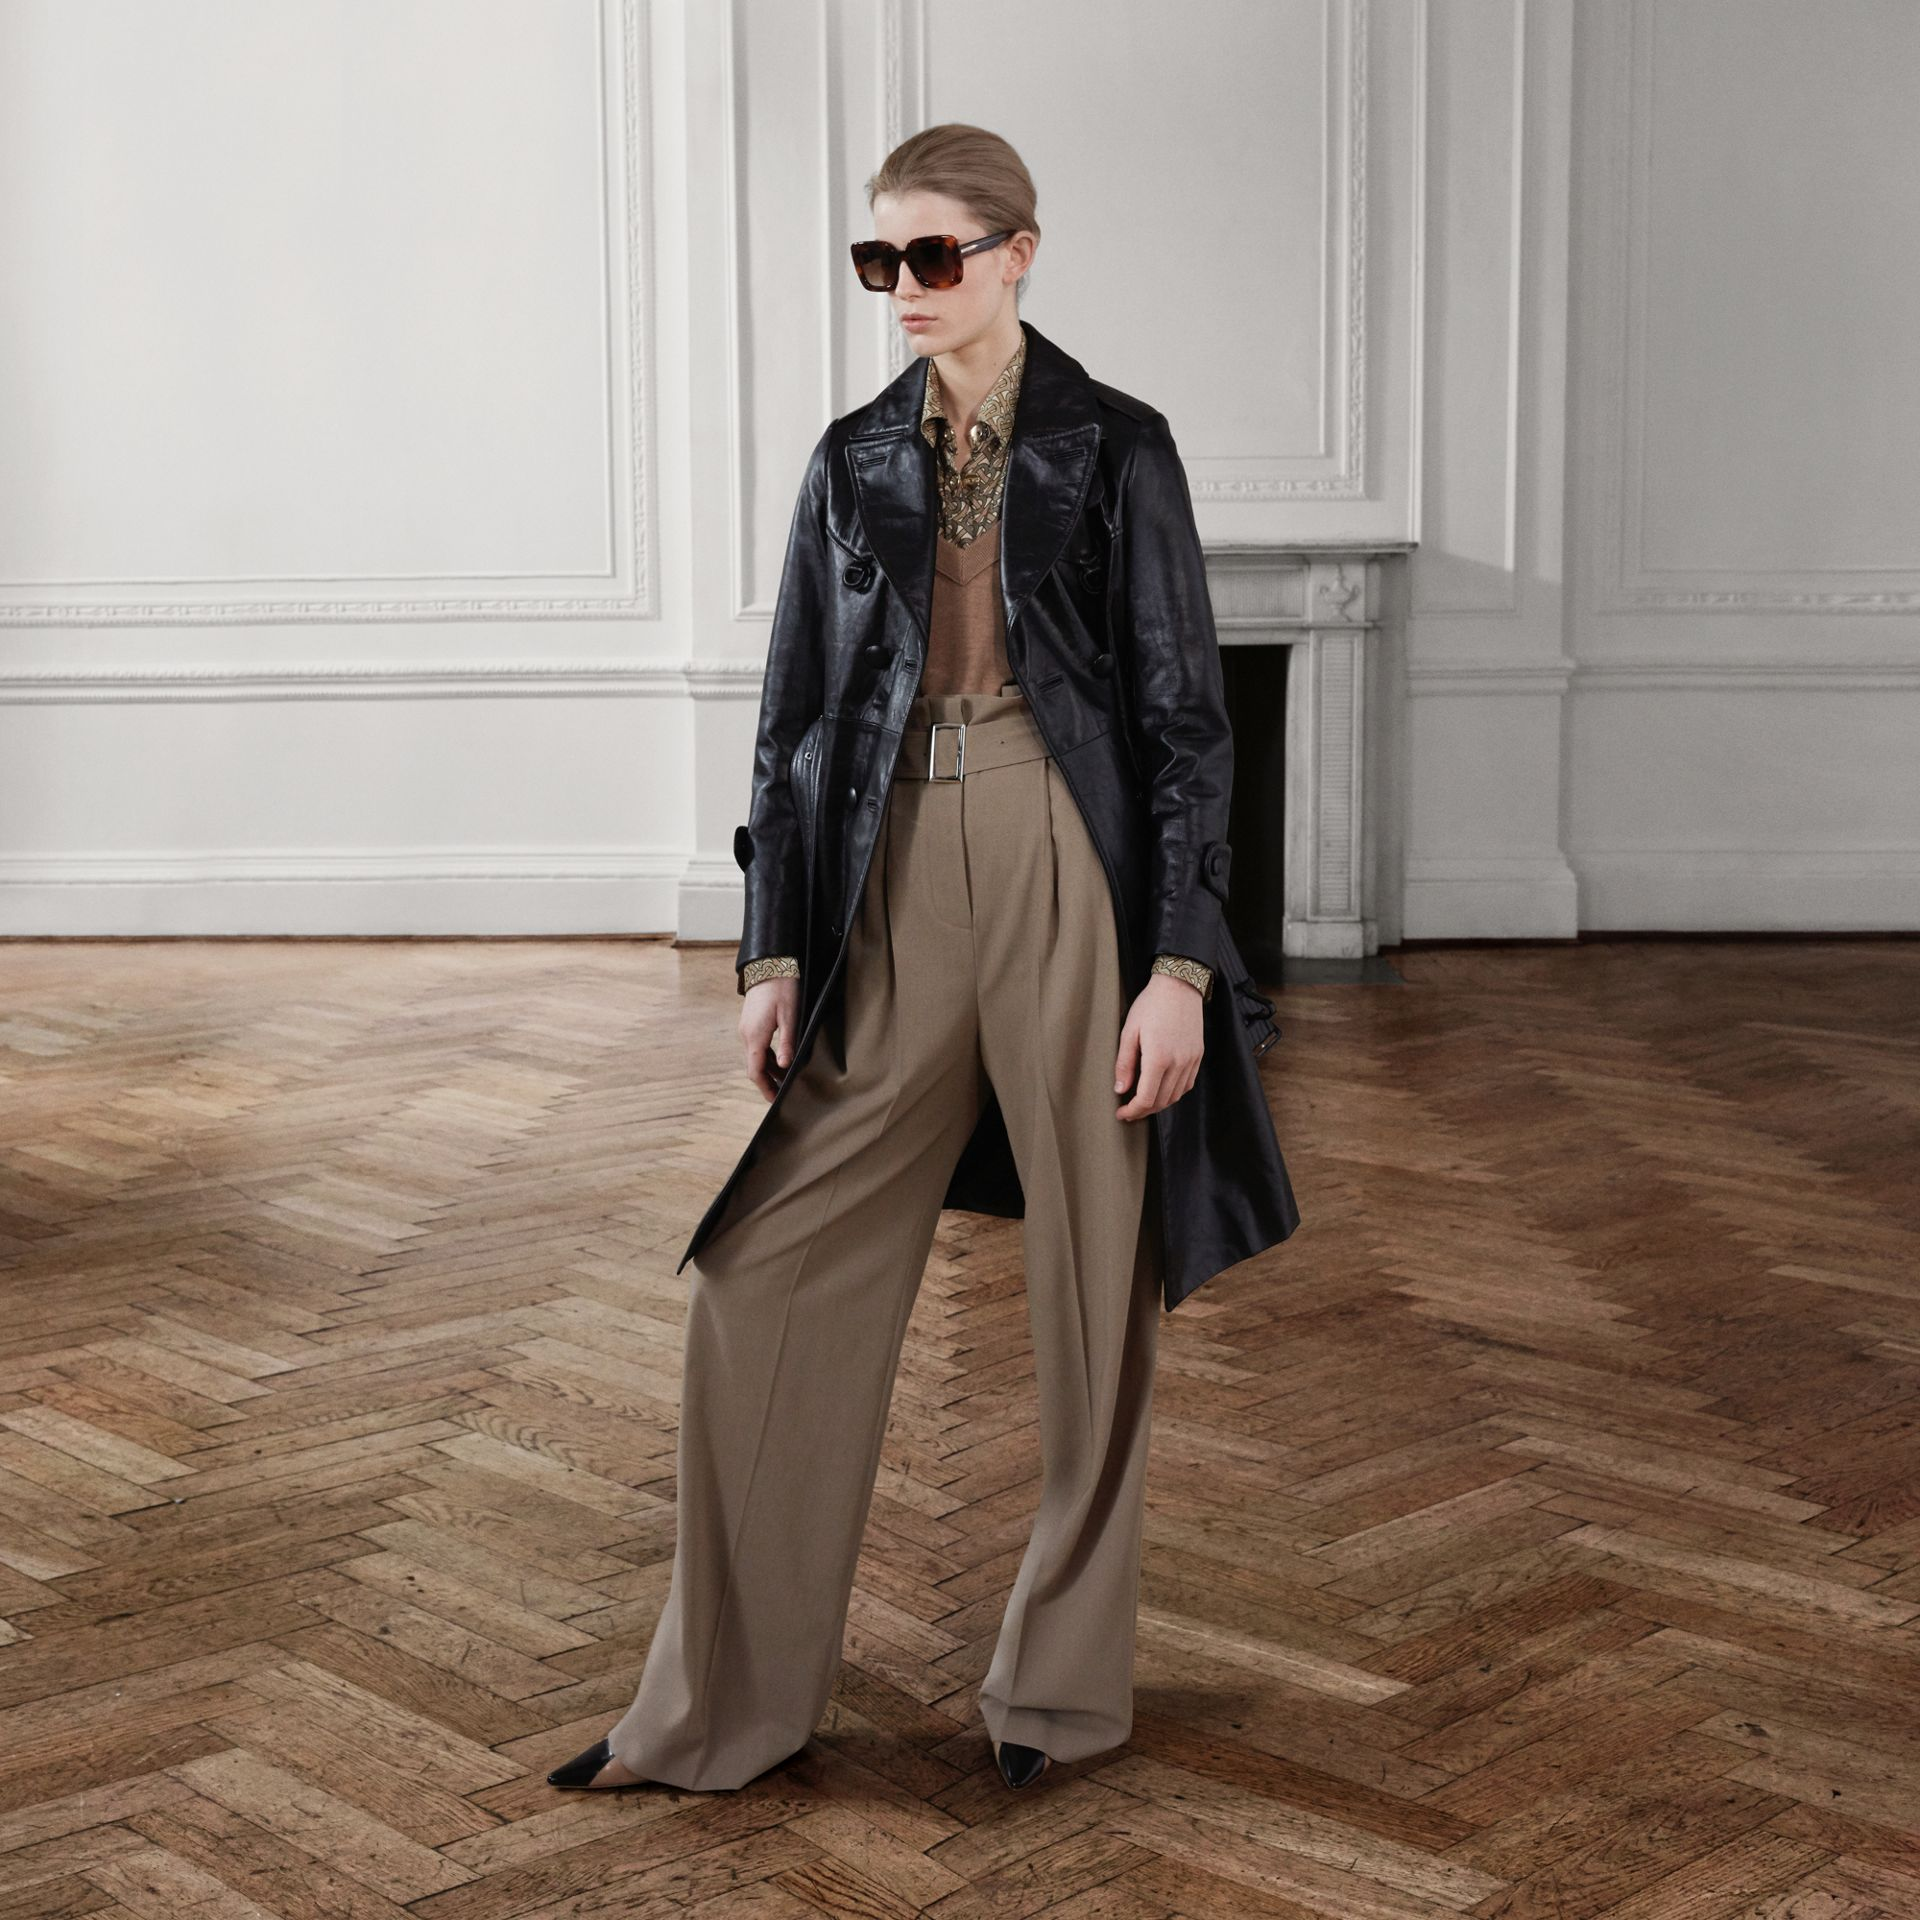 Wool Blend High-waisted Trousers in Warm Taupe - Women | Burberry Australia - gallery image 1